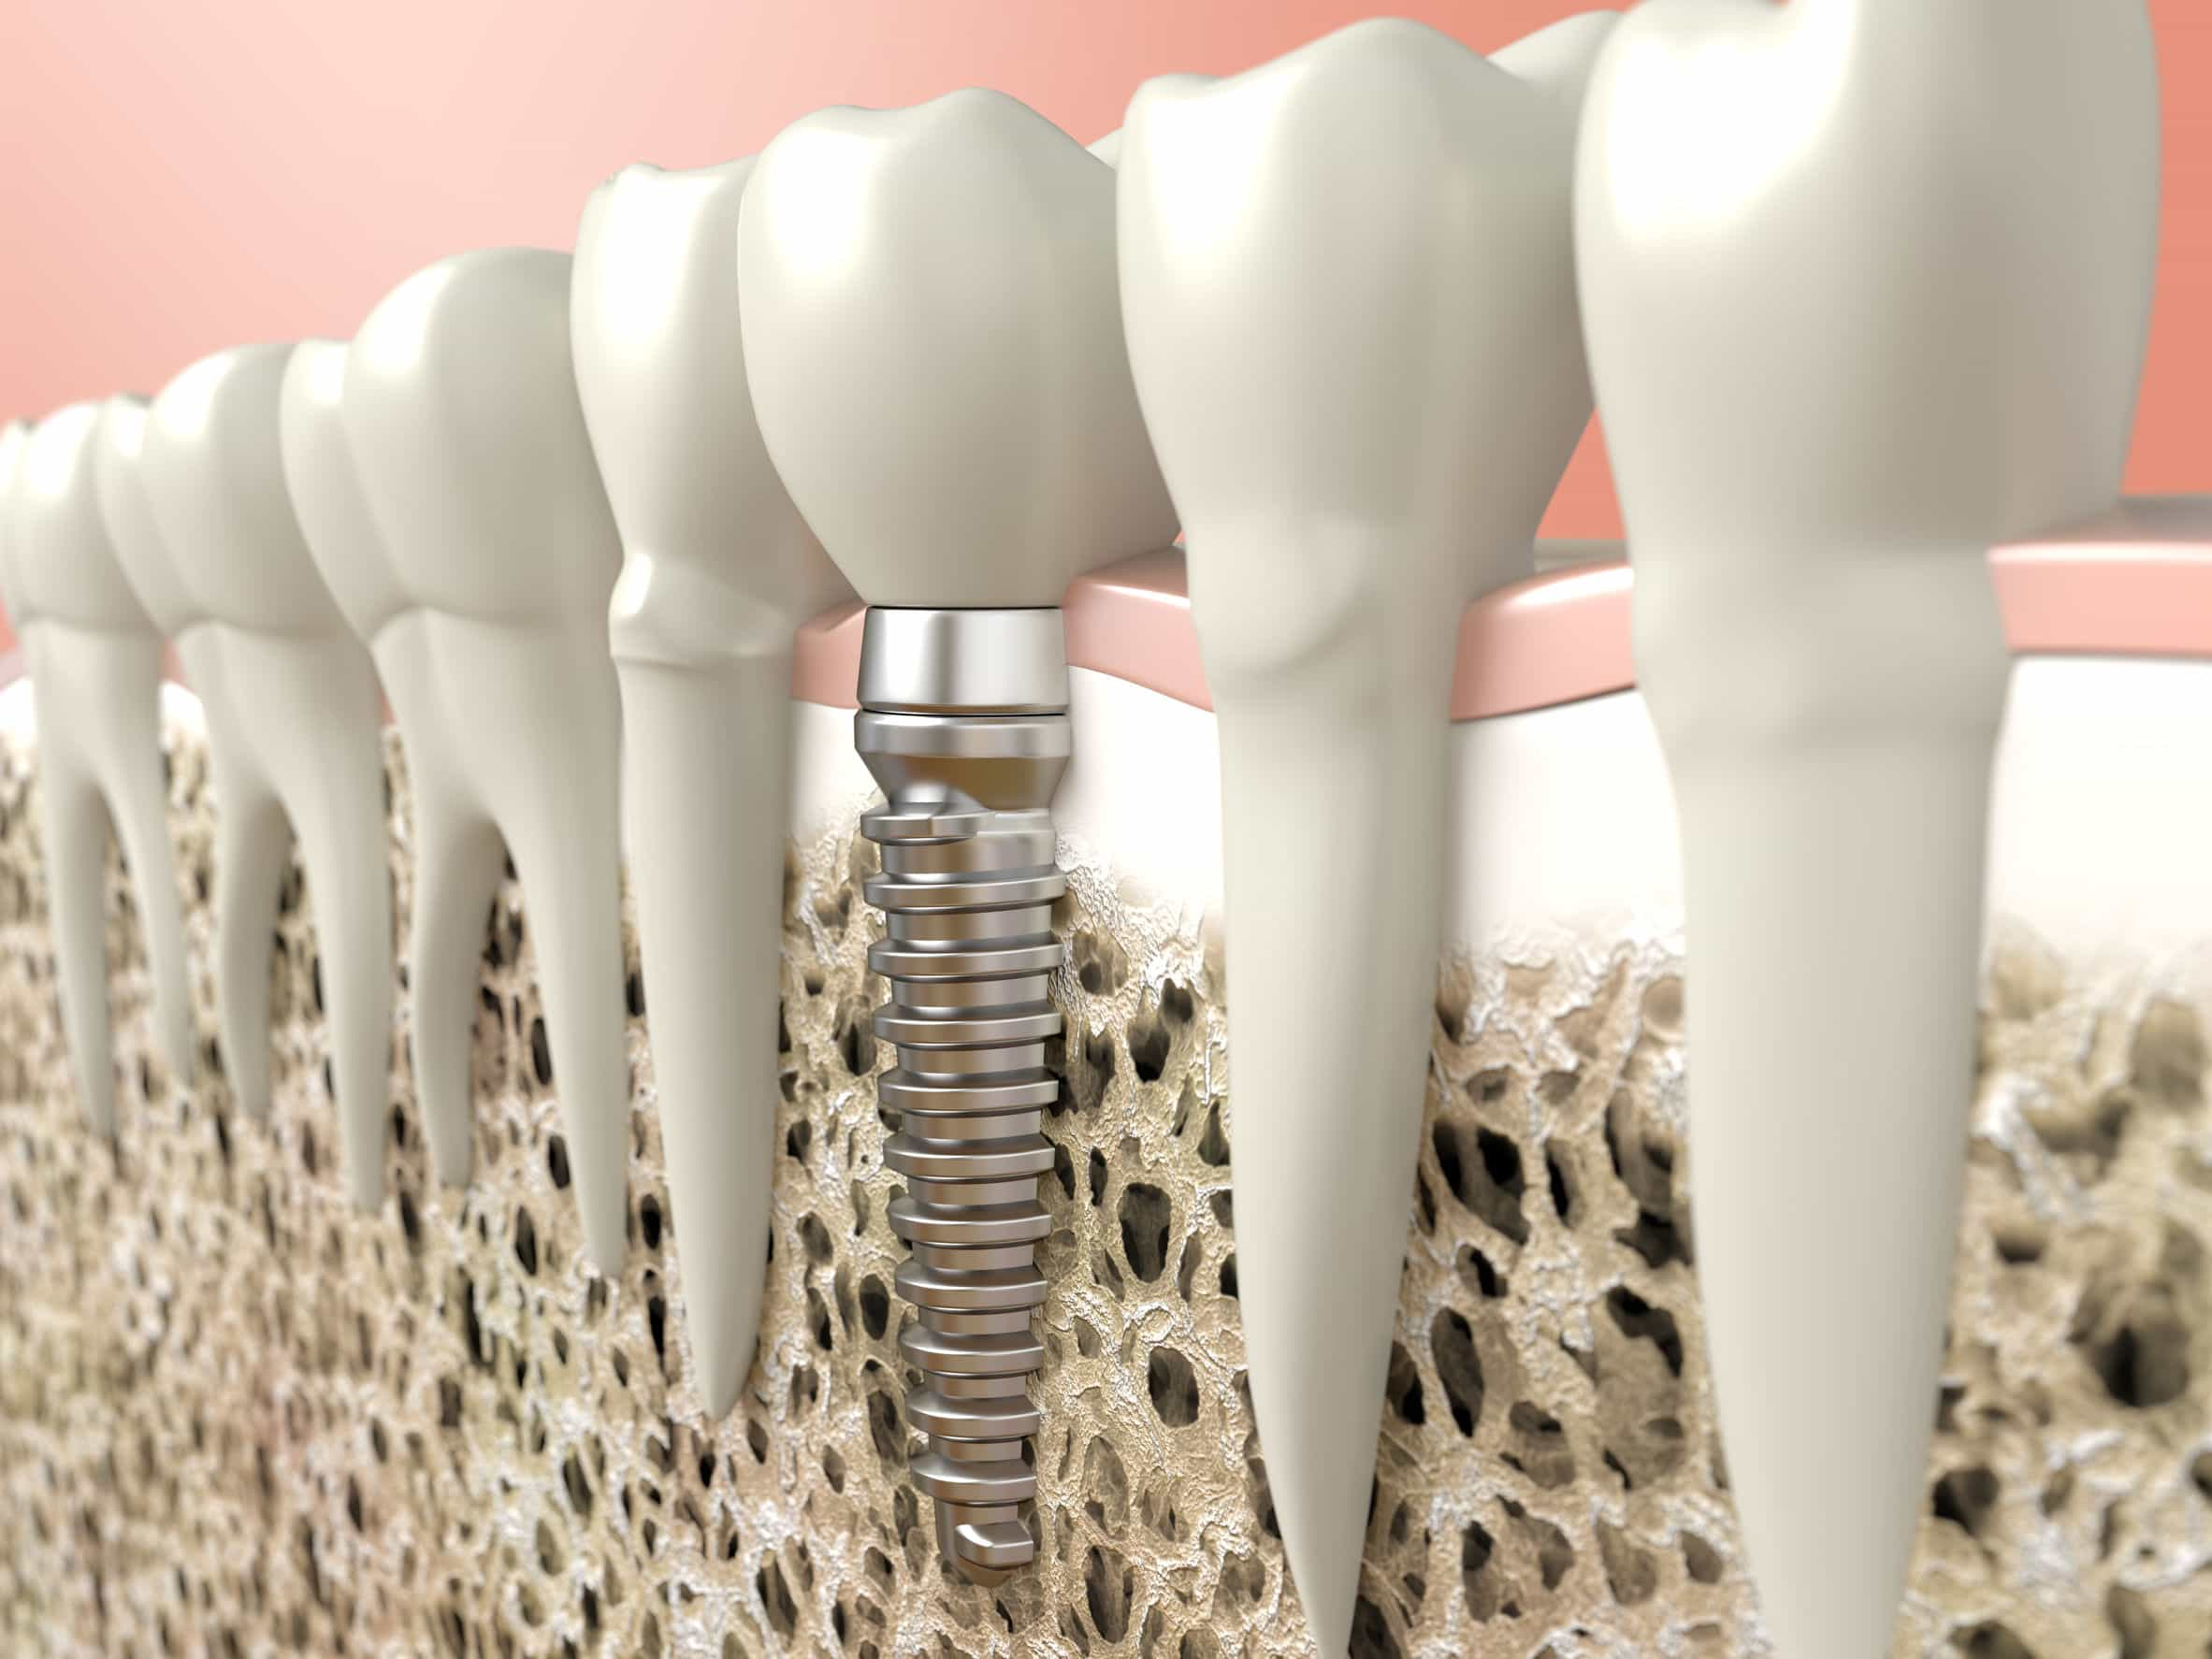 26311858 - very high resolution 3d rendering of a dental implant